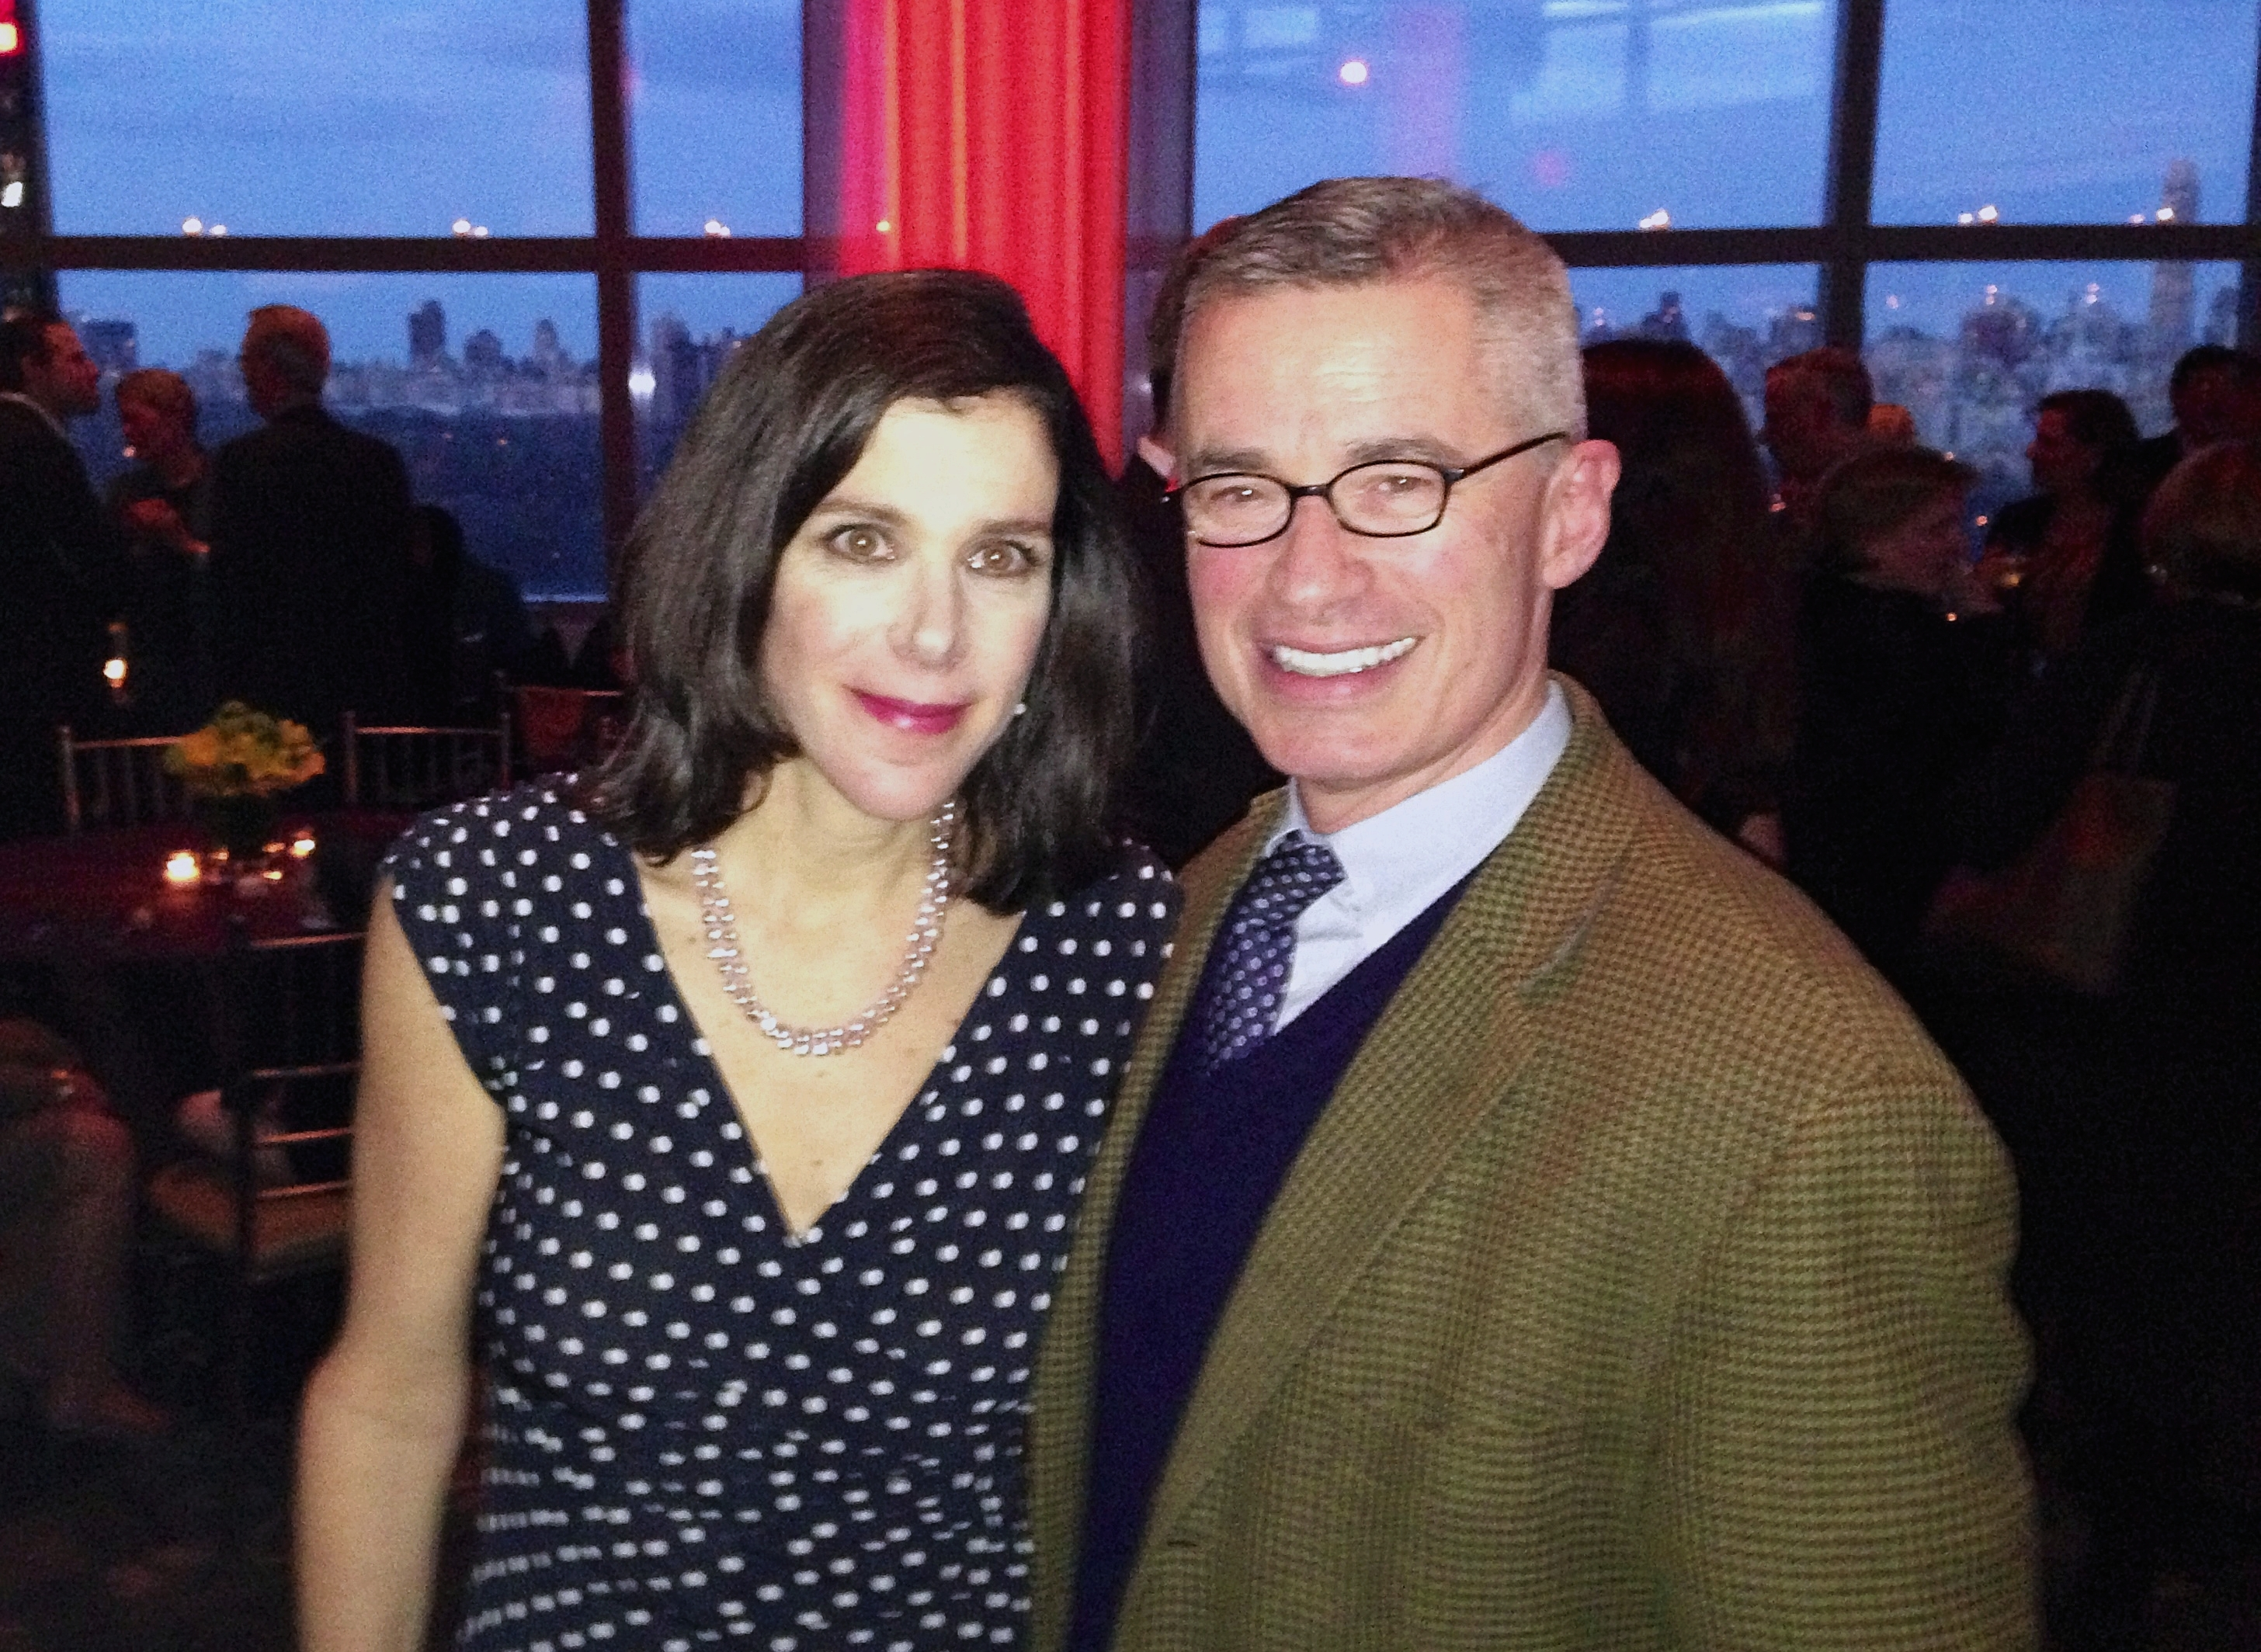 Filmmaker Alexandra Pelosi and former New Jersey Governor Jim McGreevey at the New York City premiere of Pelosi's HBO documentary about McGreevey, Fall to Grace, in March 2013.